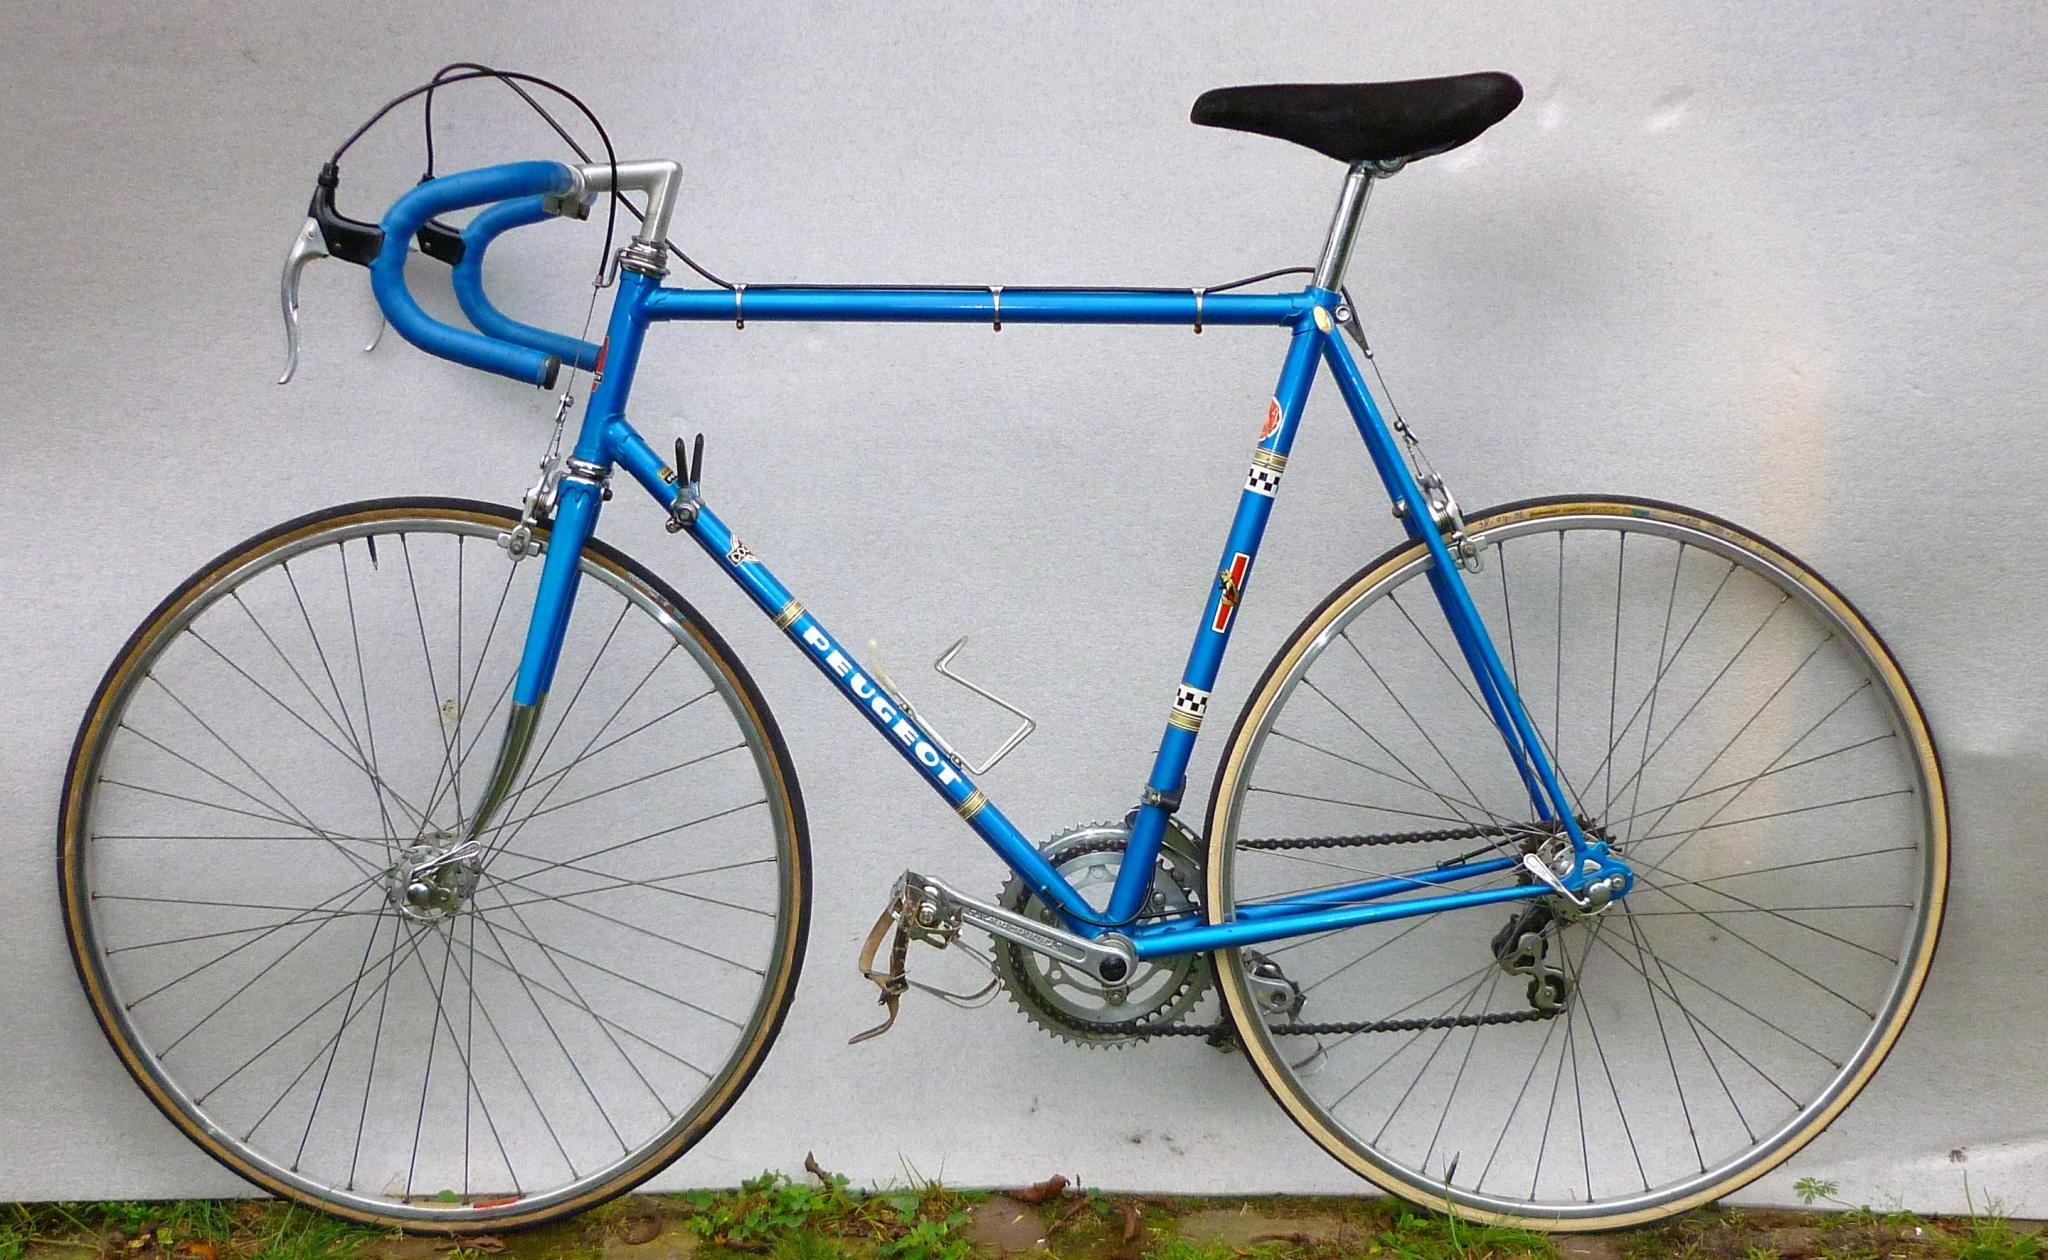 for sale: peugeot complete road bike 60cm lovely condition | lfgss